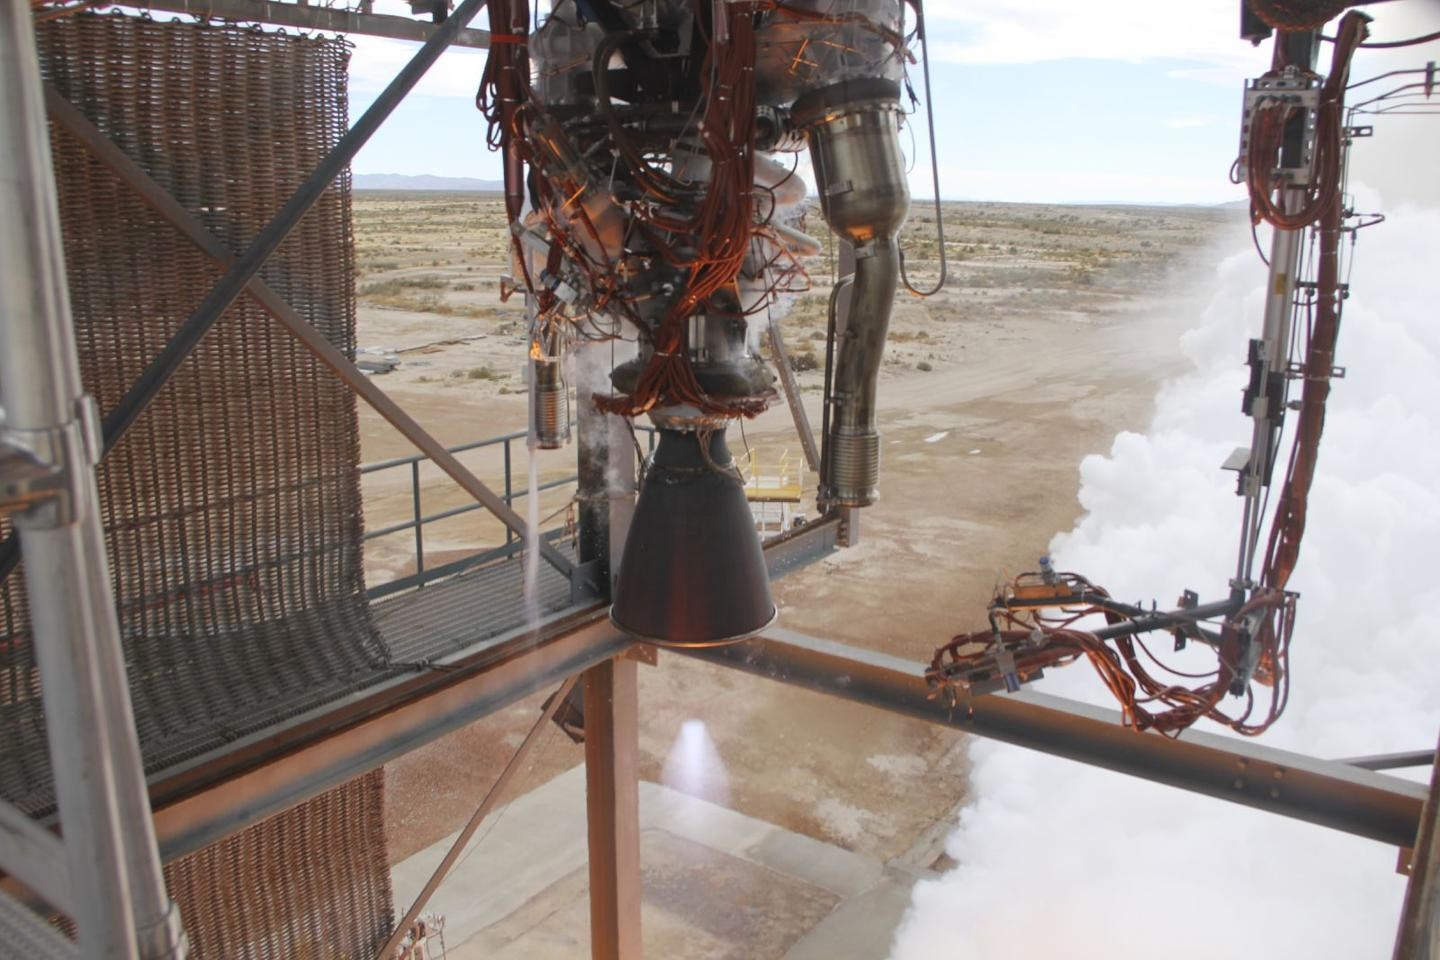 Test firing of the BE-3 hydrogen/oxygen rocket engine that took place on Nov. 20, 2013 (Photo: Blue Origin)